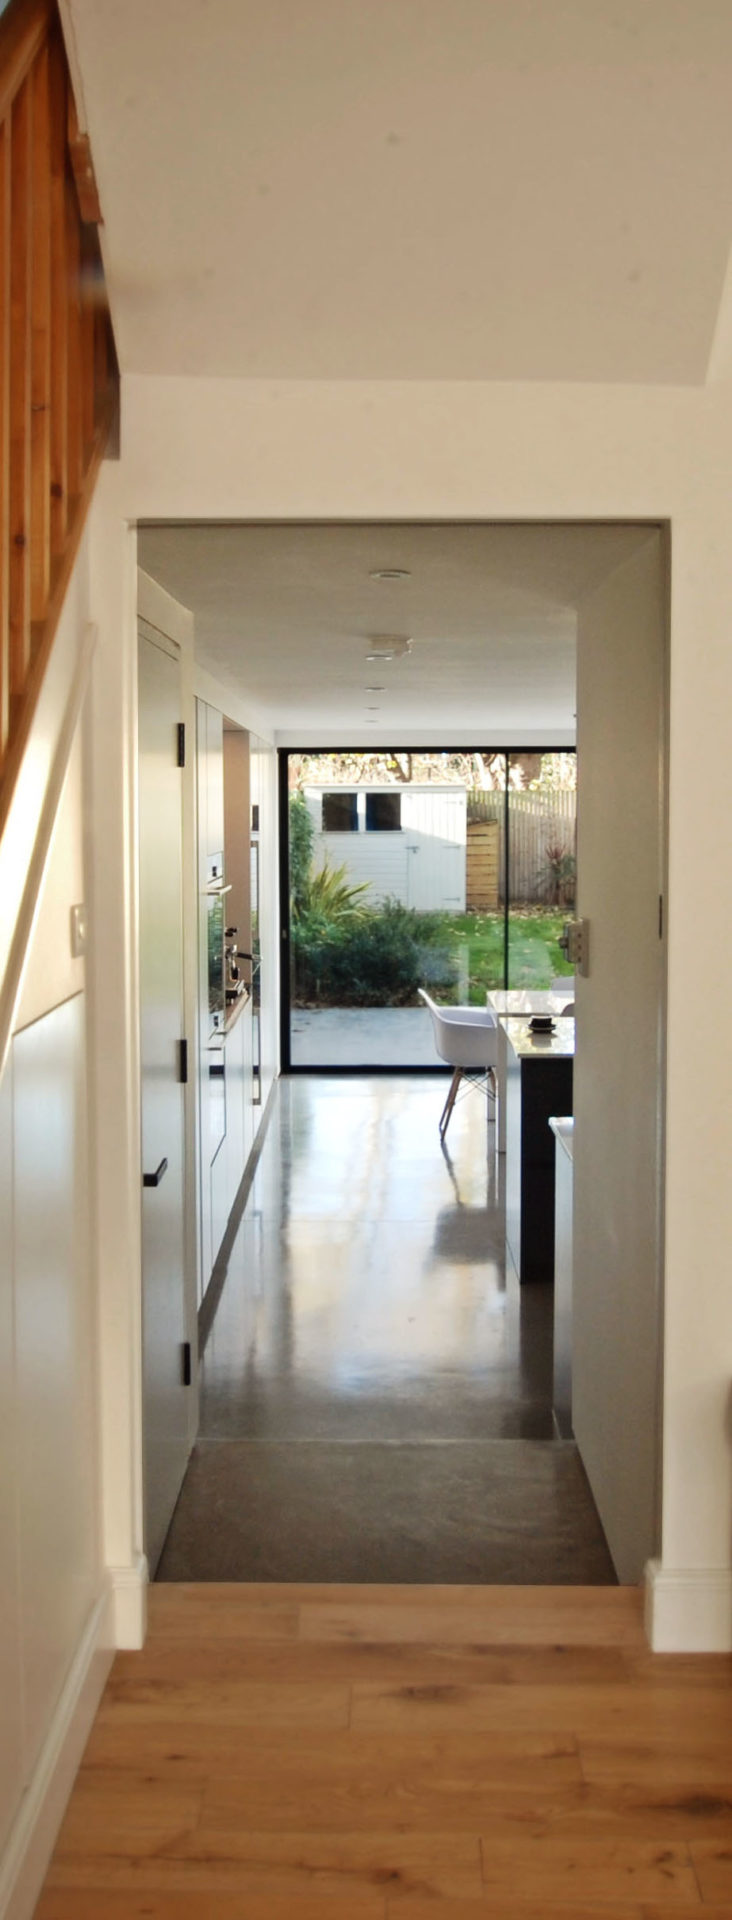 Garden extension London